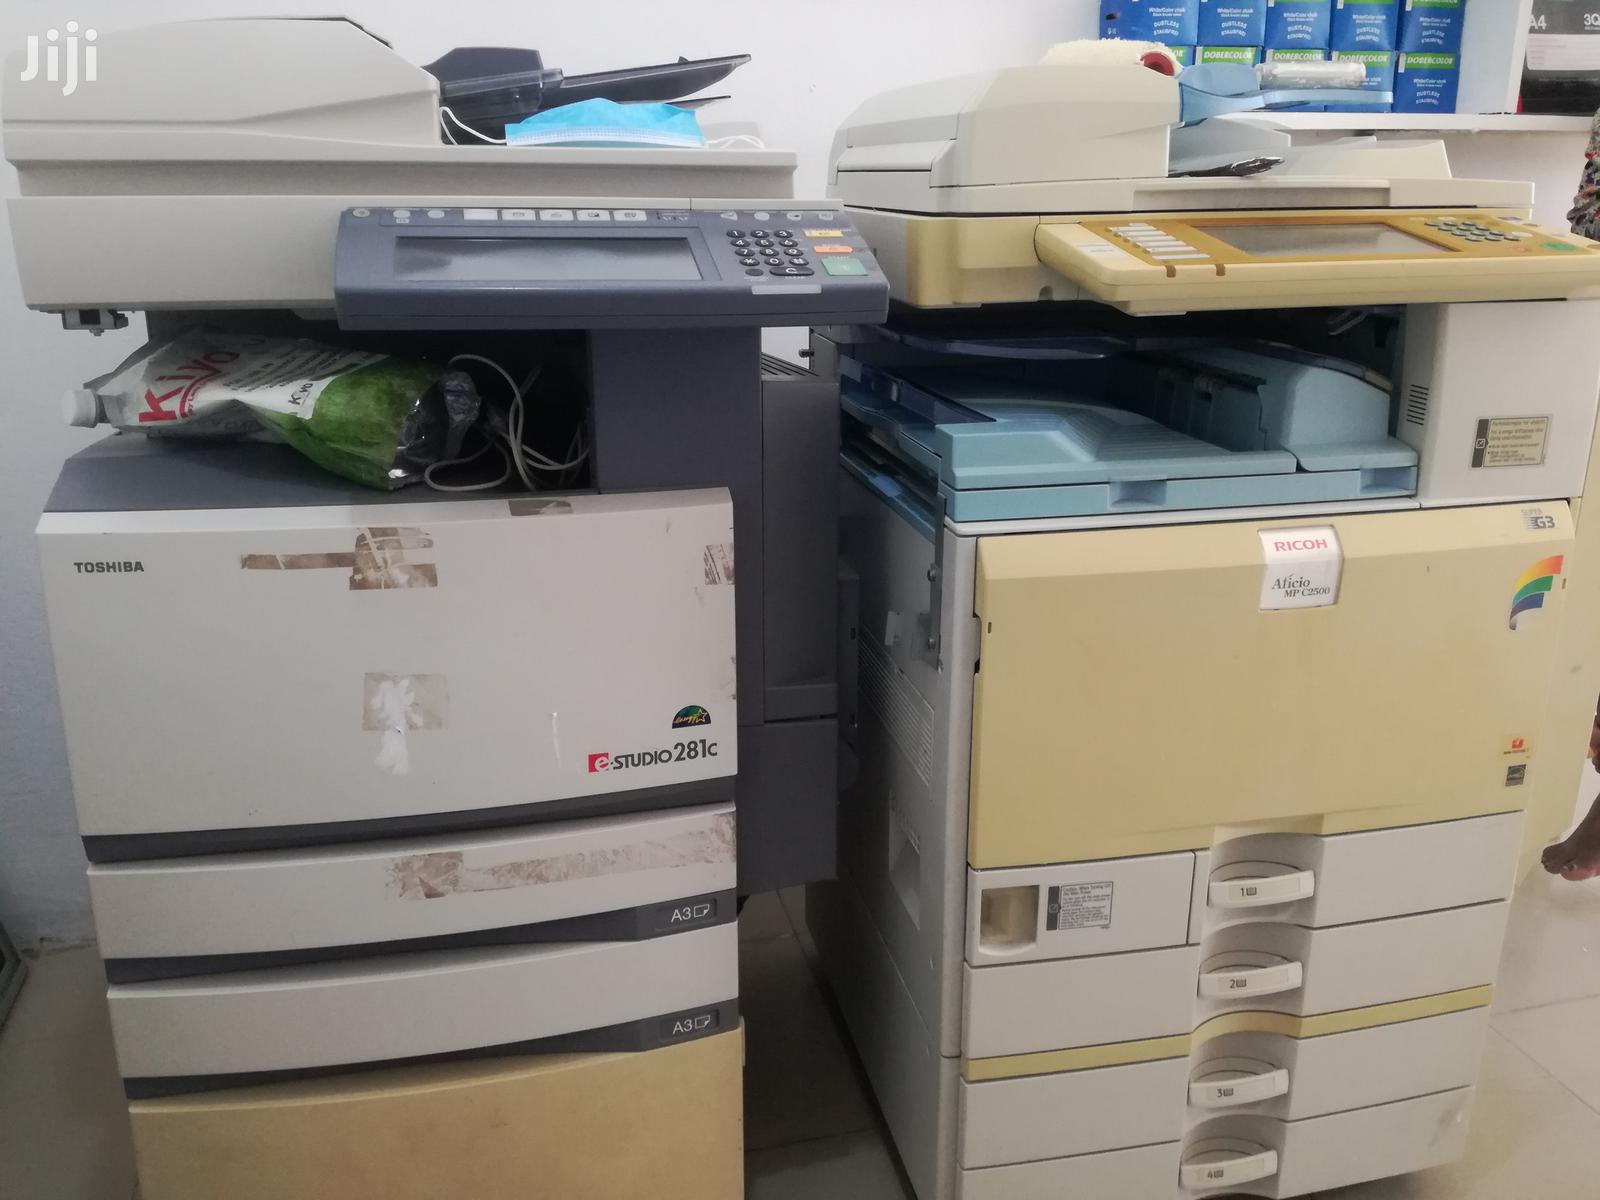 Archive: Two Photocopy Machines